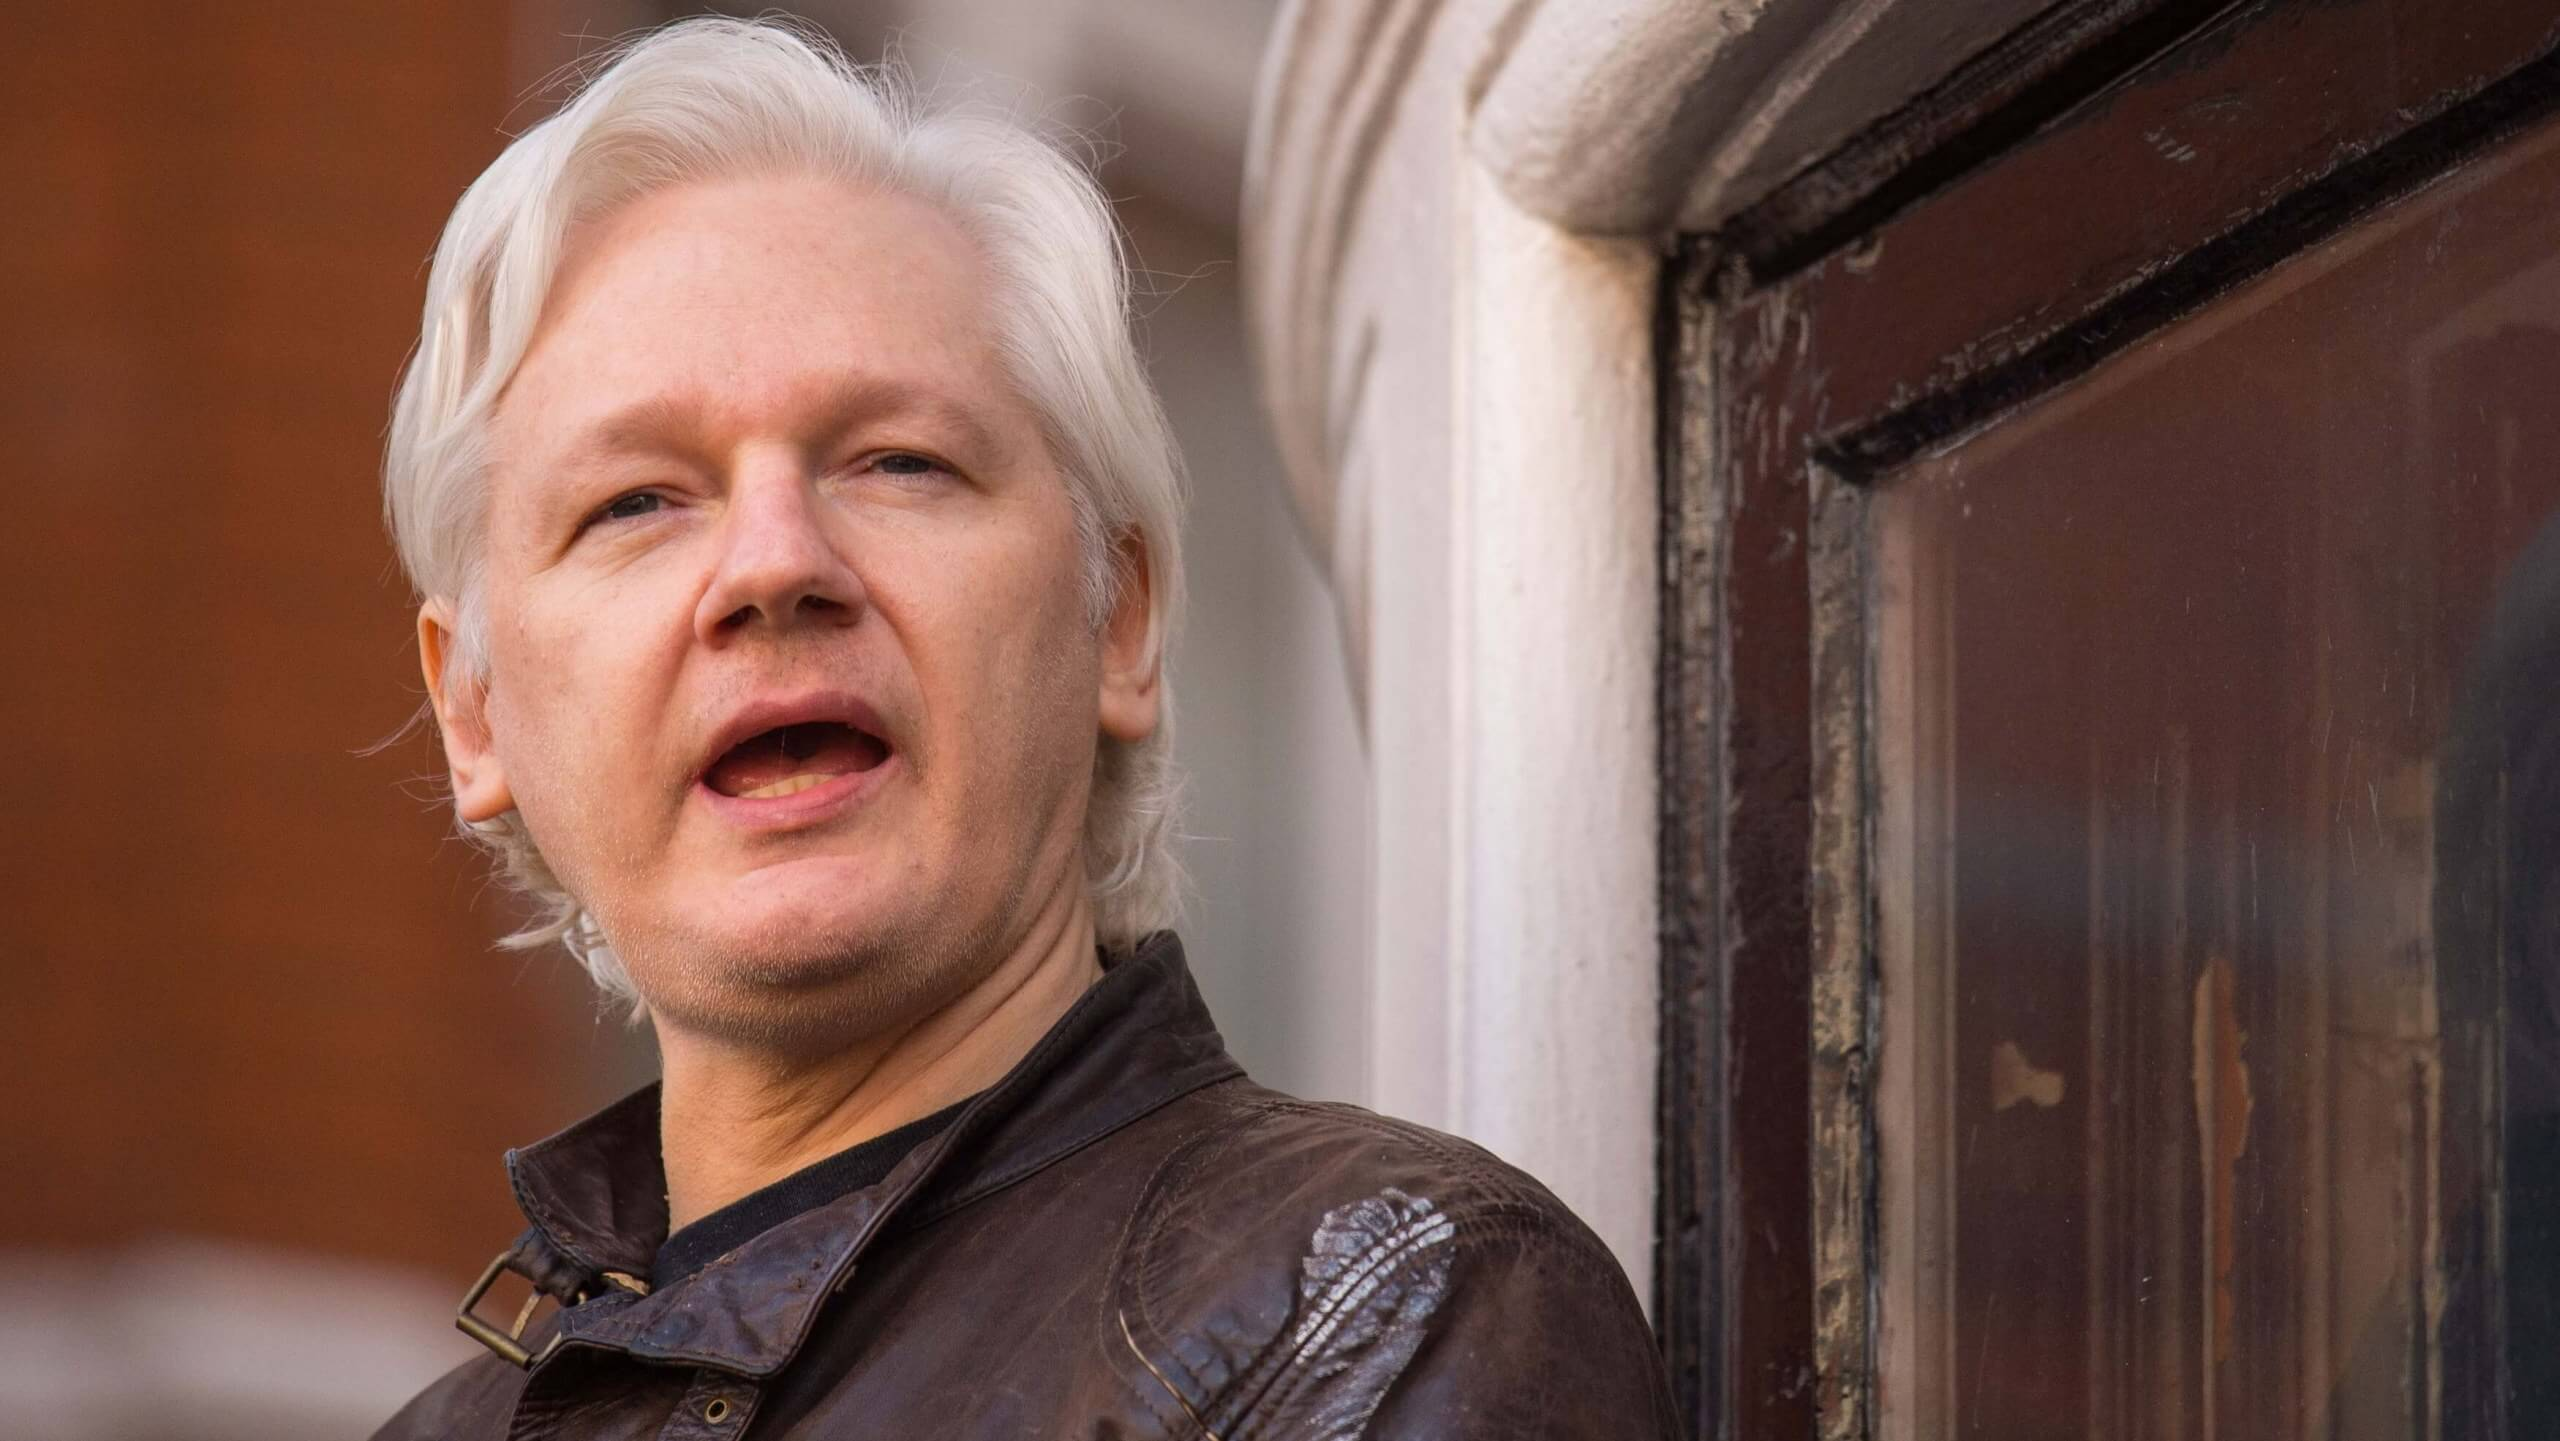 New editor-in-chief for WikiLeaks takes over while Assange remains incommunicado